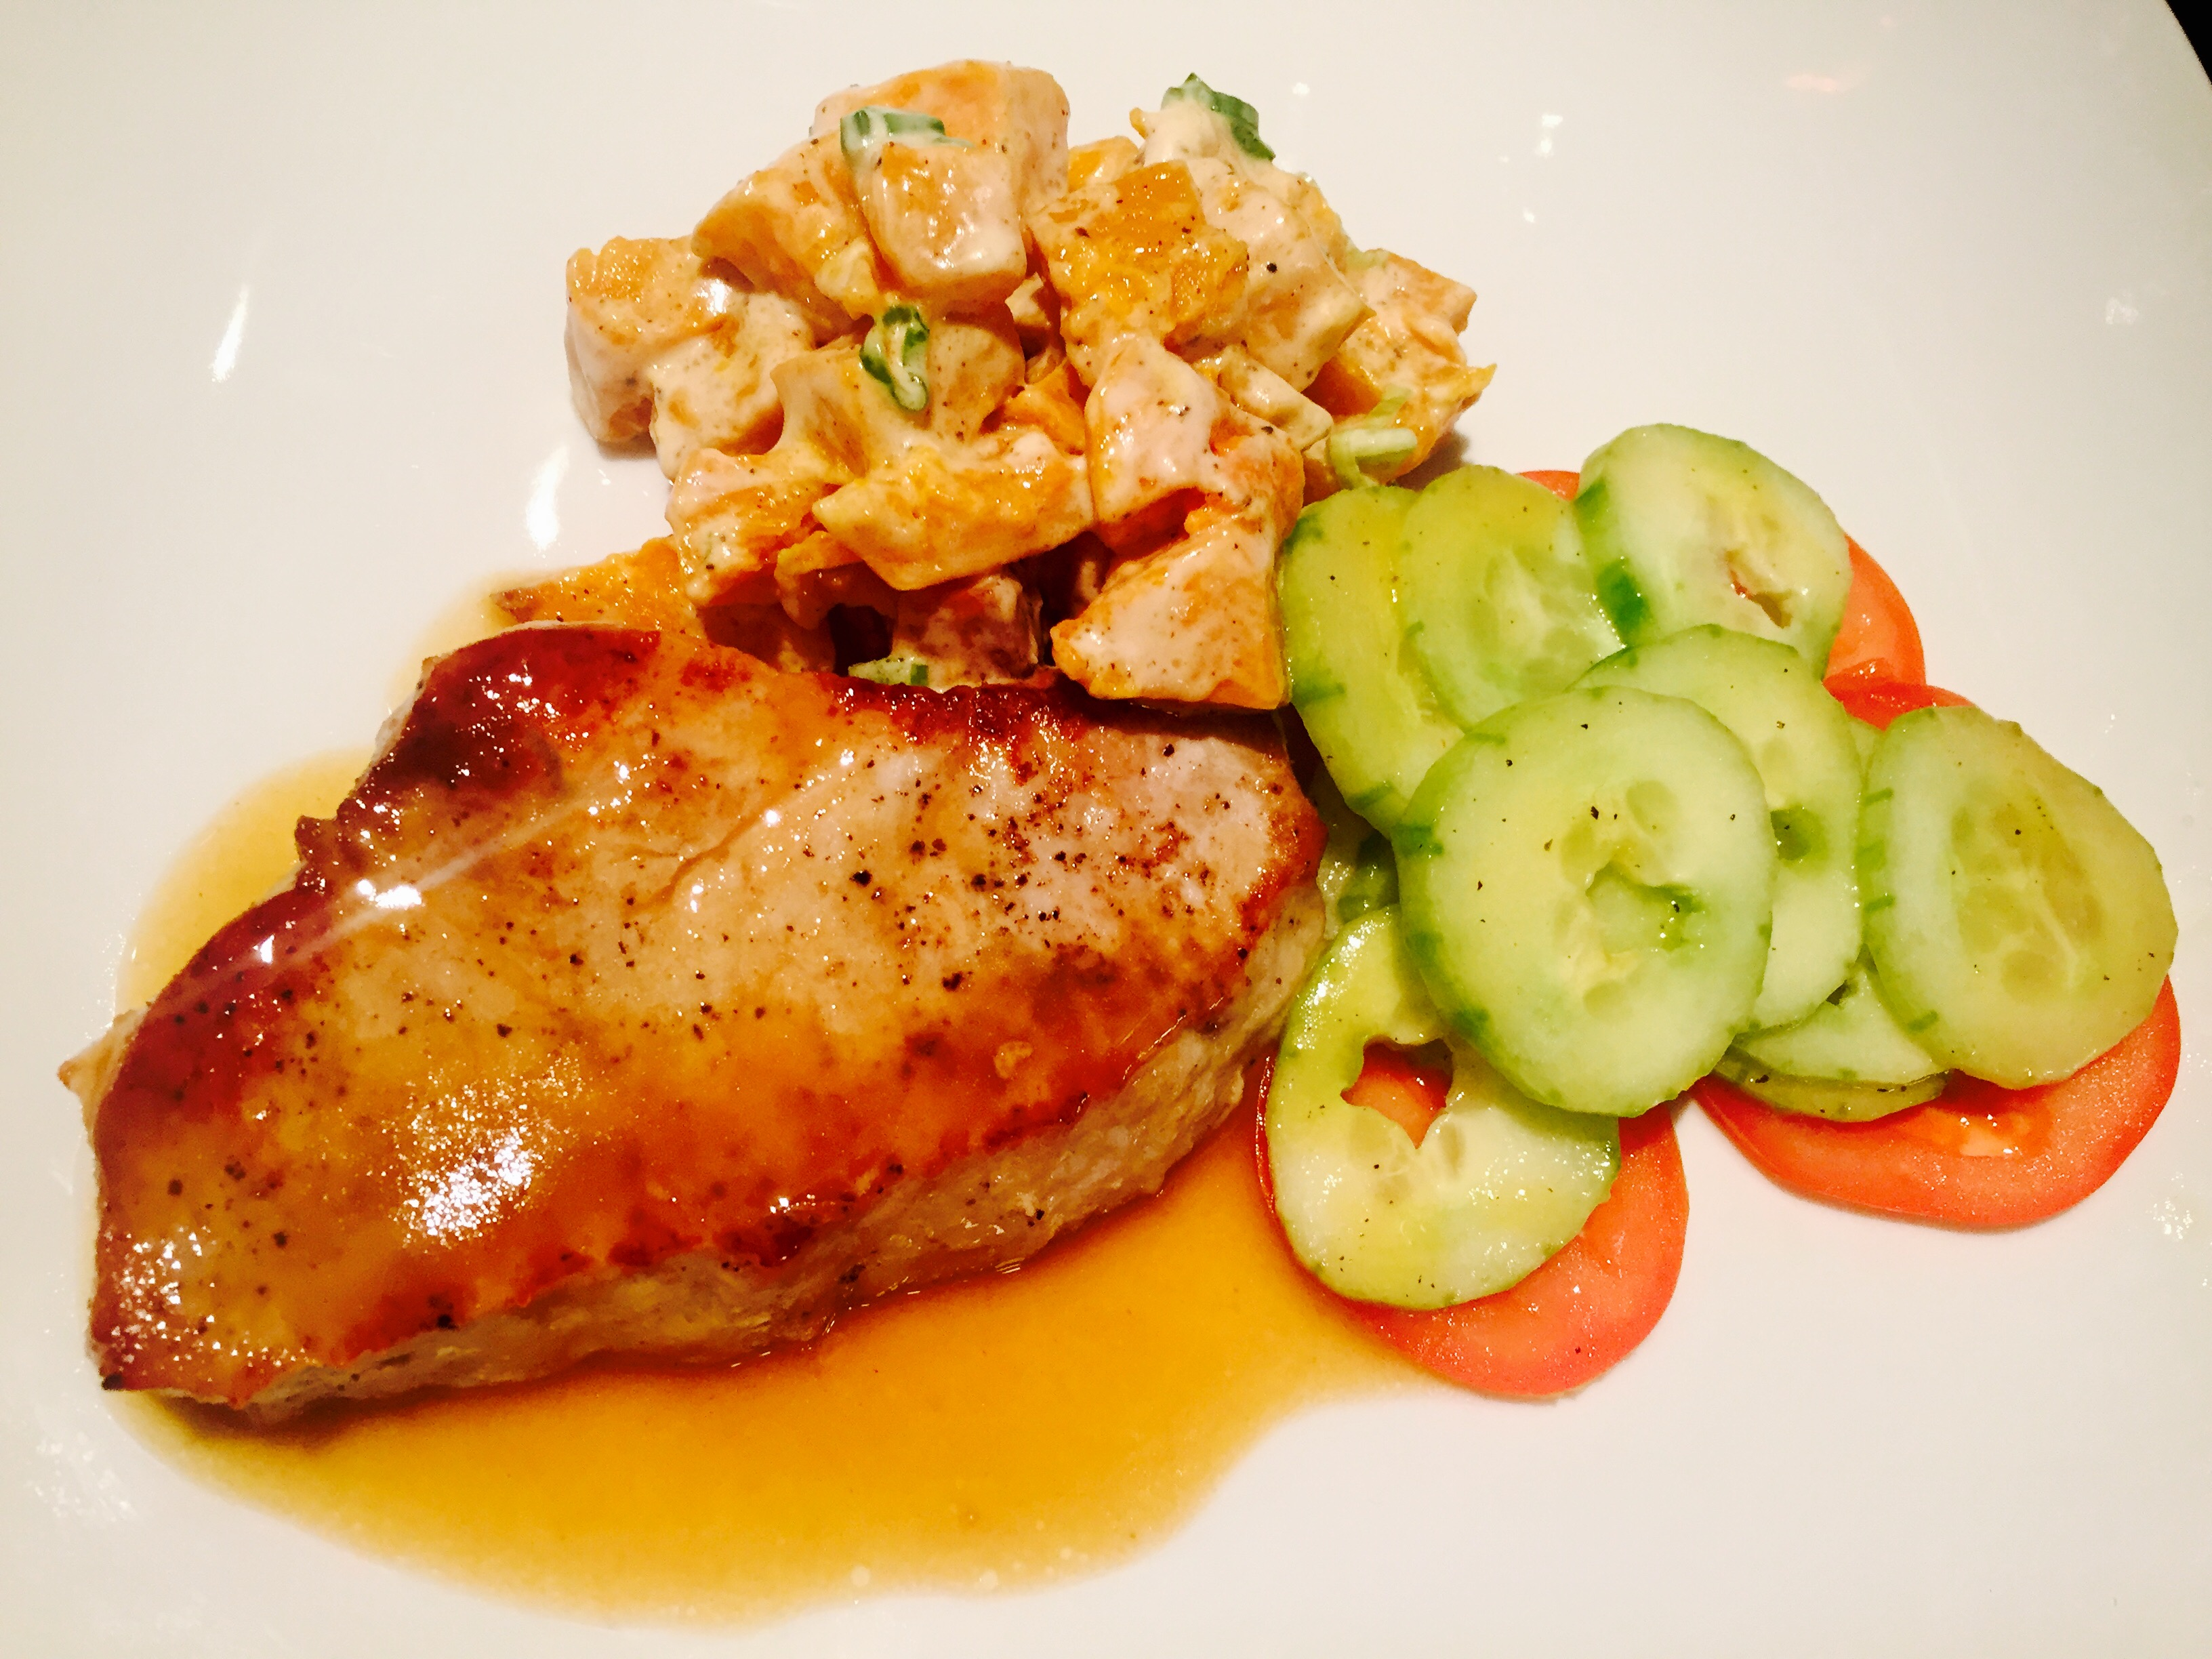 Seared Pork with Roasted Squash Salad and Cucumber-Tomato Medley